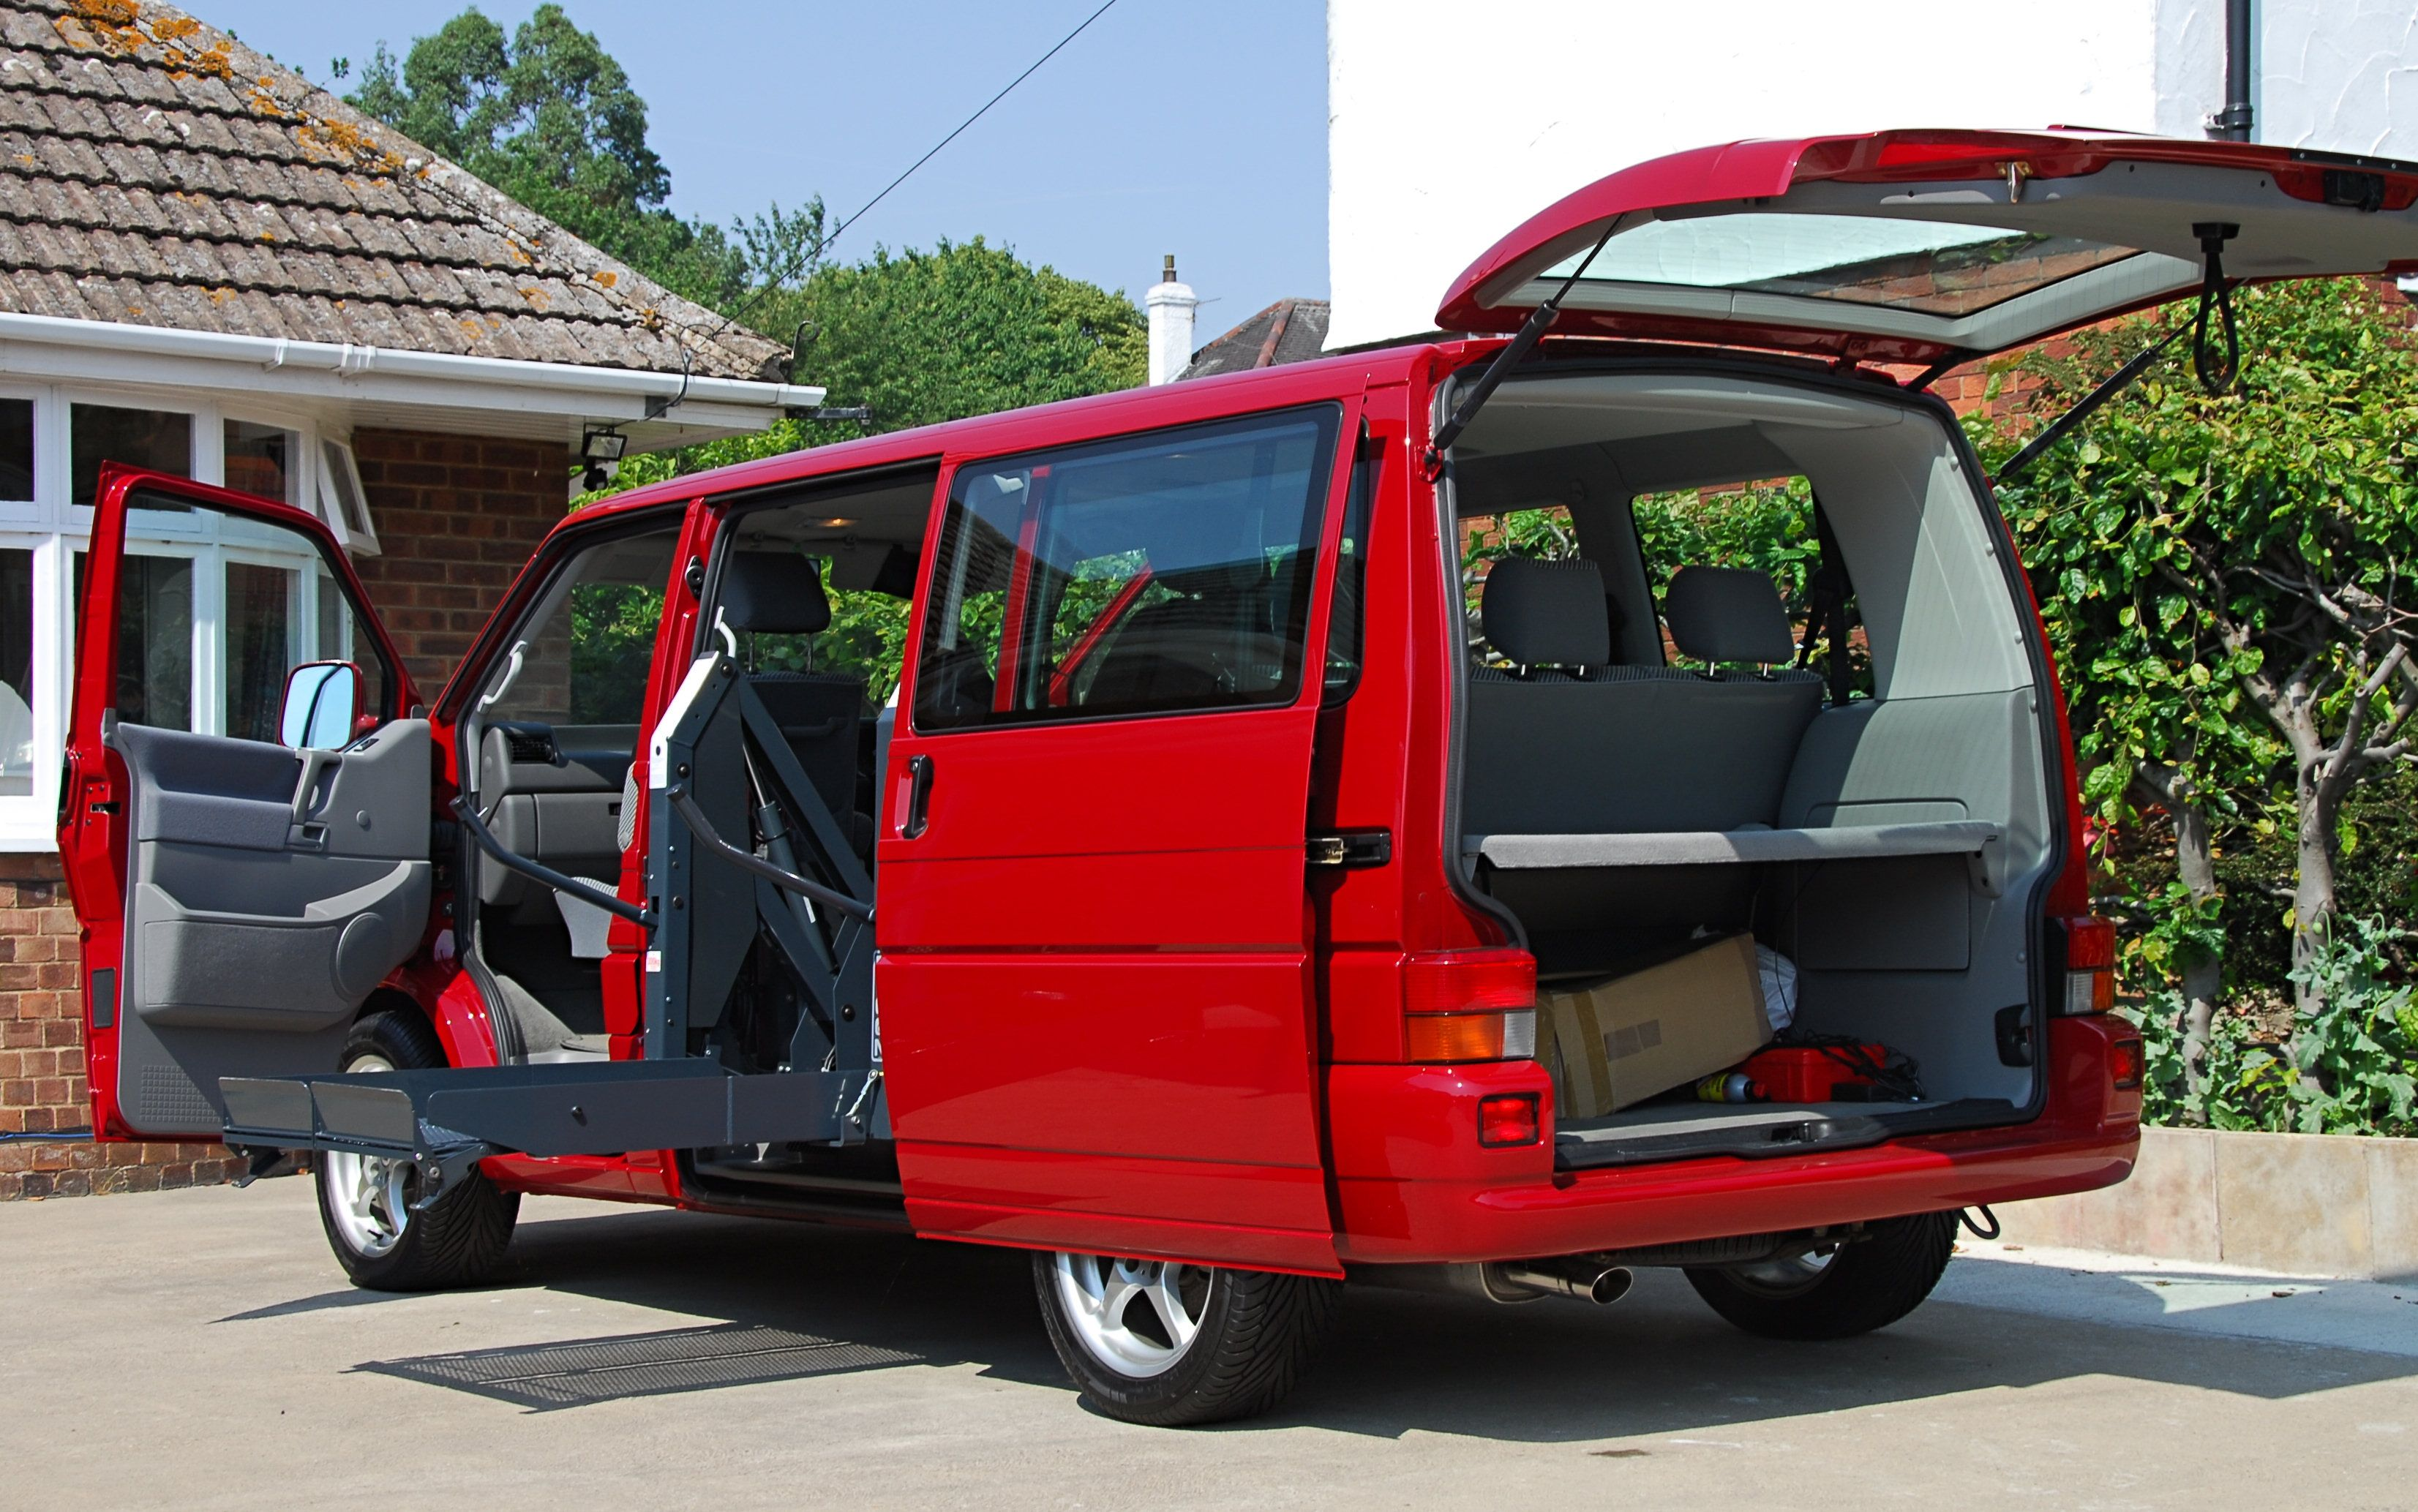 volkswagen t4 caravelle volkswagen t4 caravelle. Black Bedroom Furniture Sets. Home Design Ideas